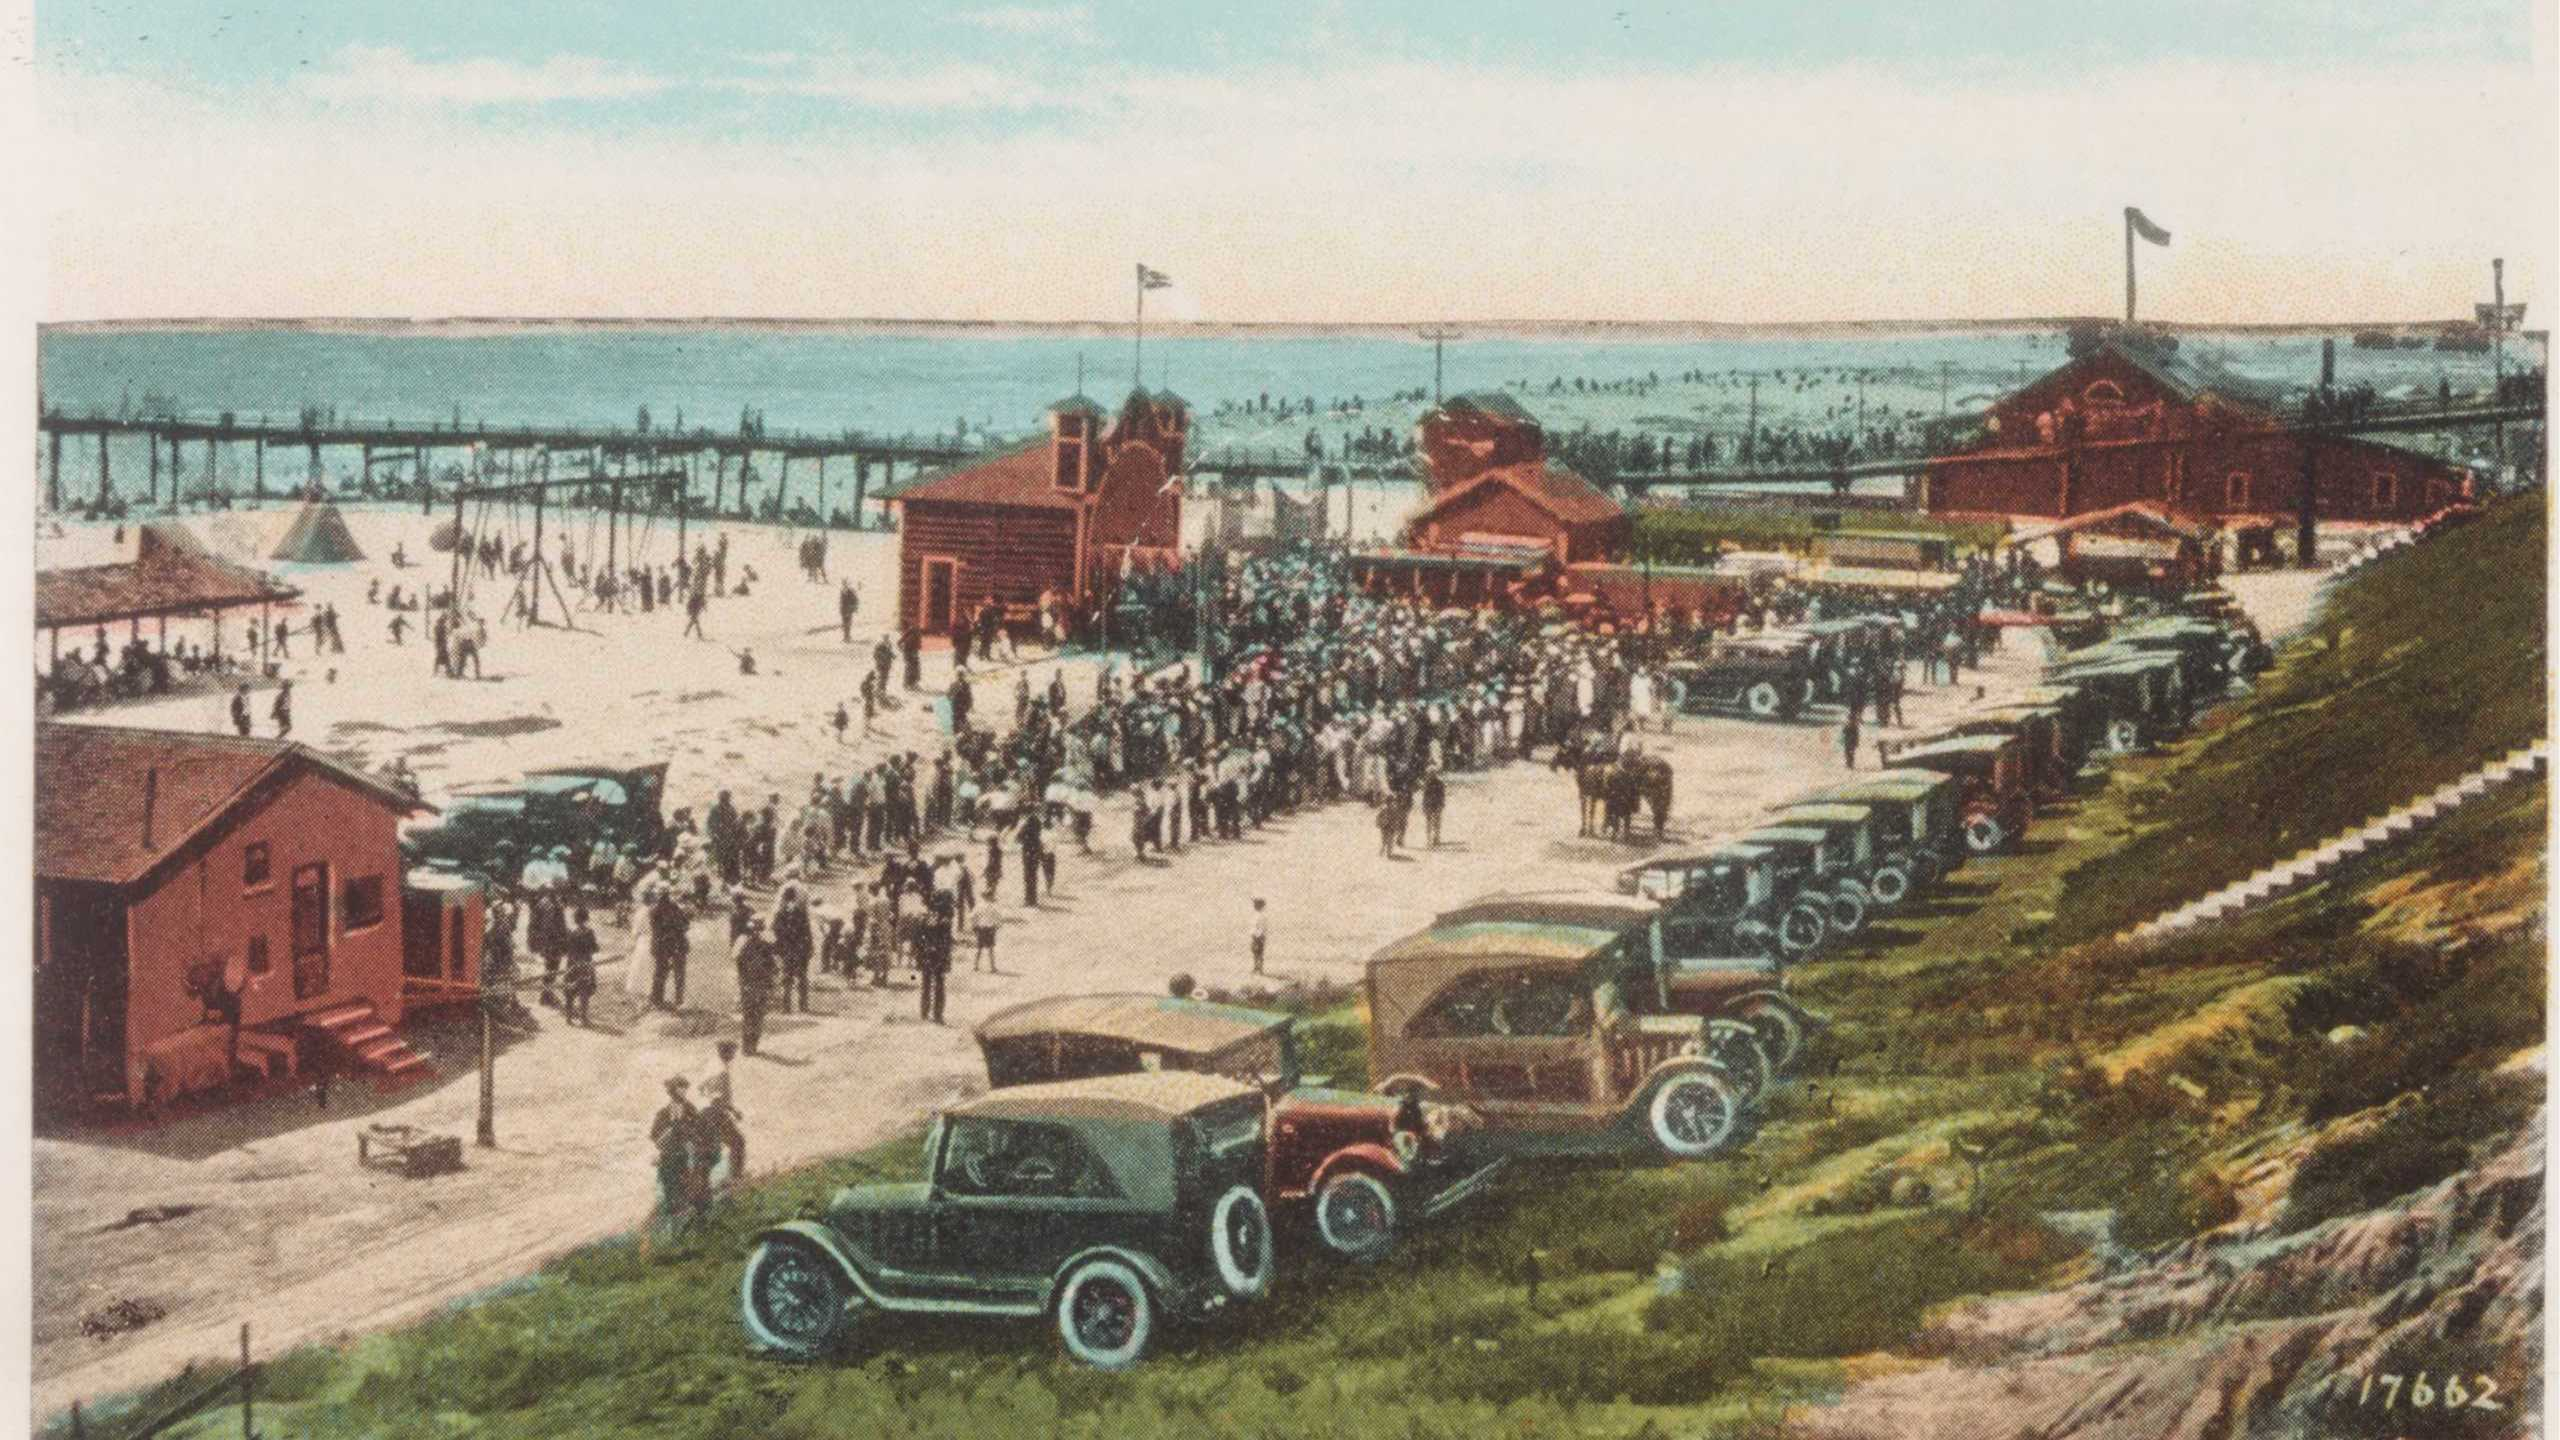 1924 Historical South of the Oceanside Pier and bandshell